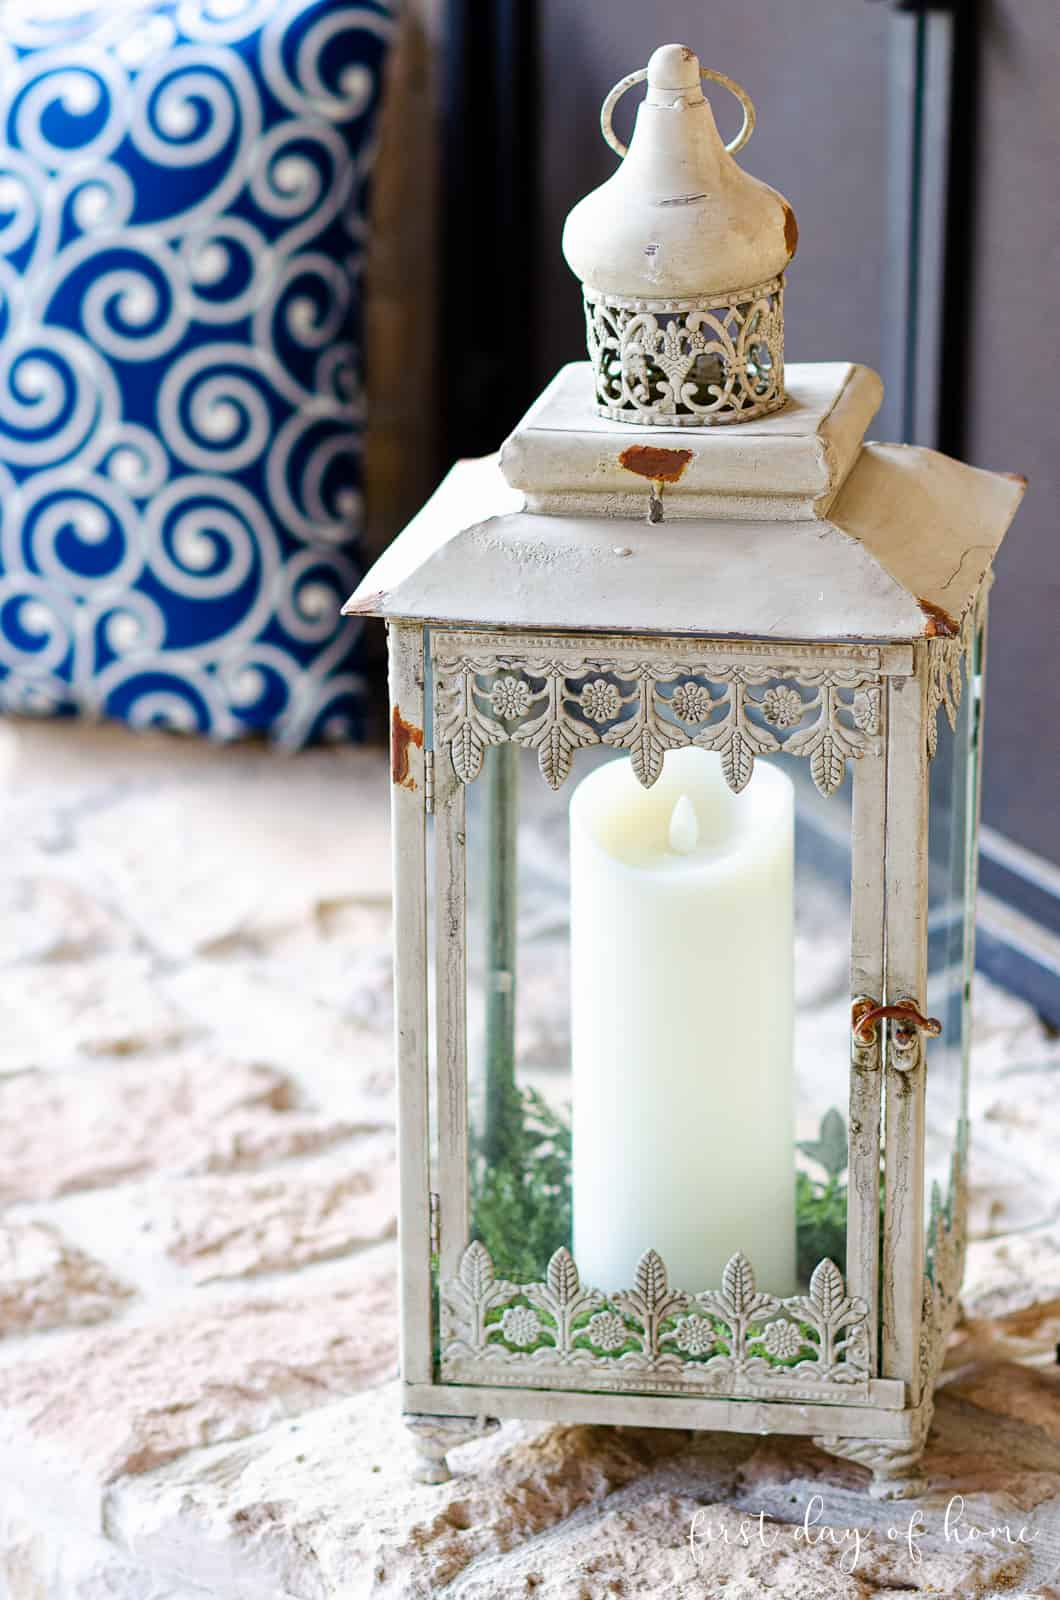 Lantern decorating ideas with blue pillow accent or greenery for outdoor decor